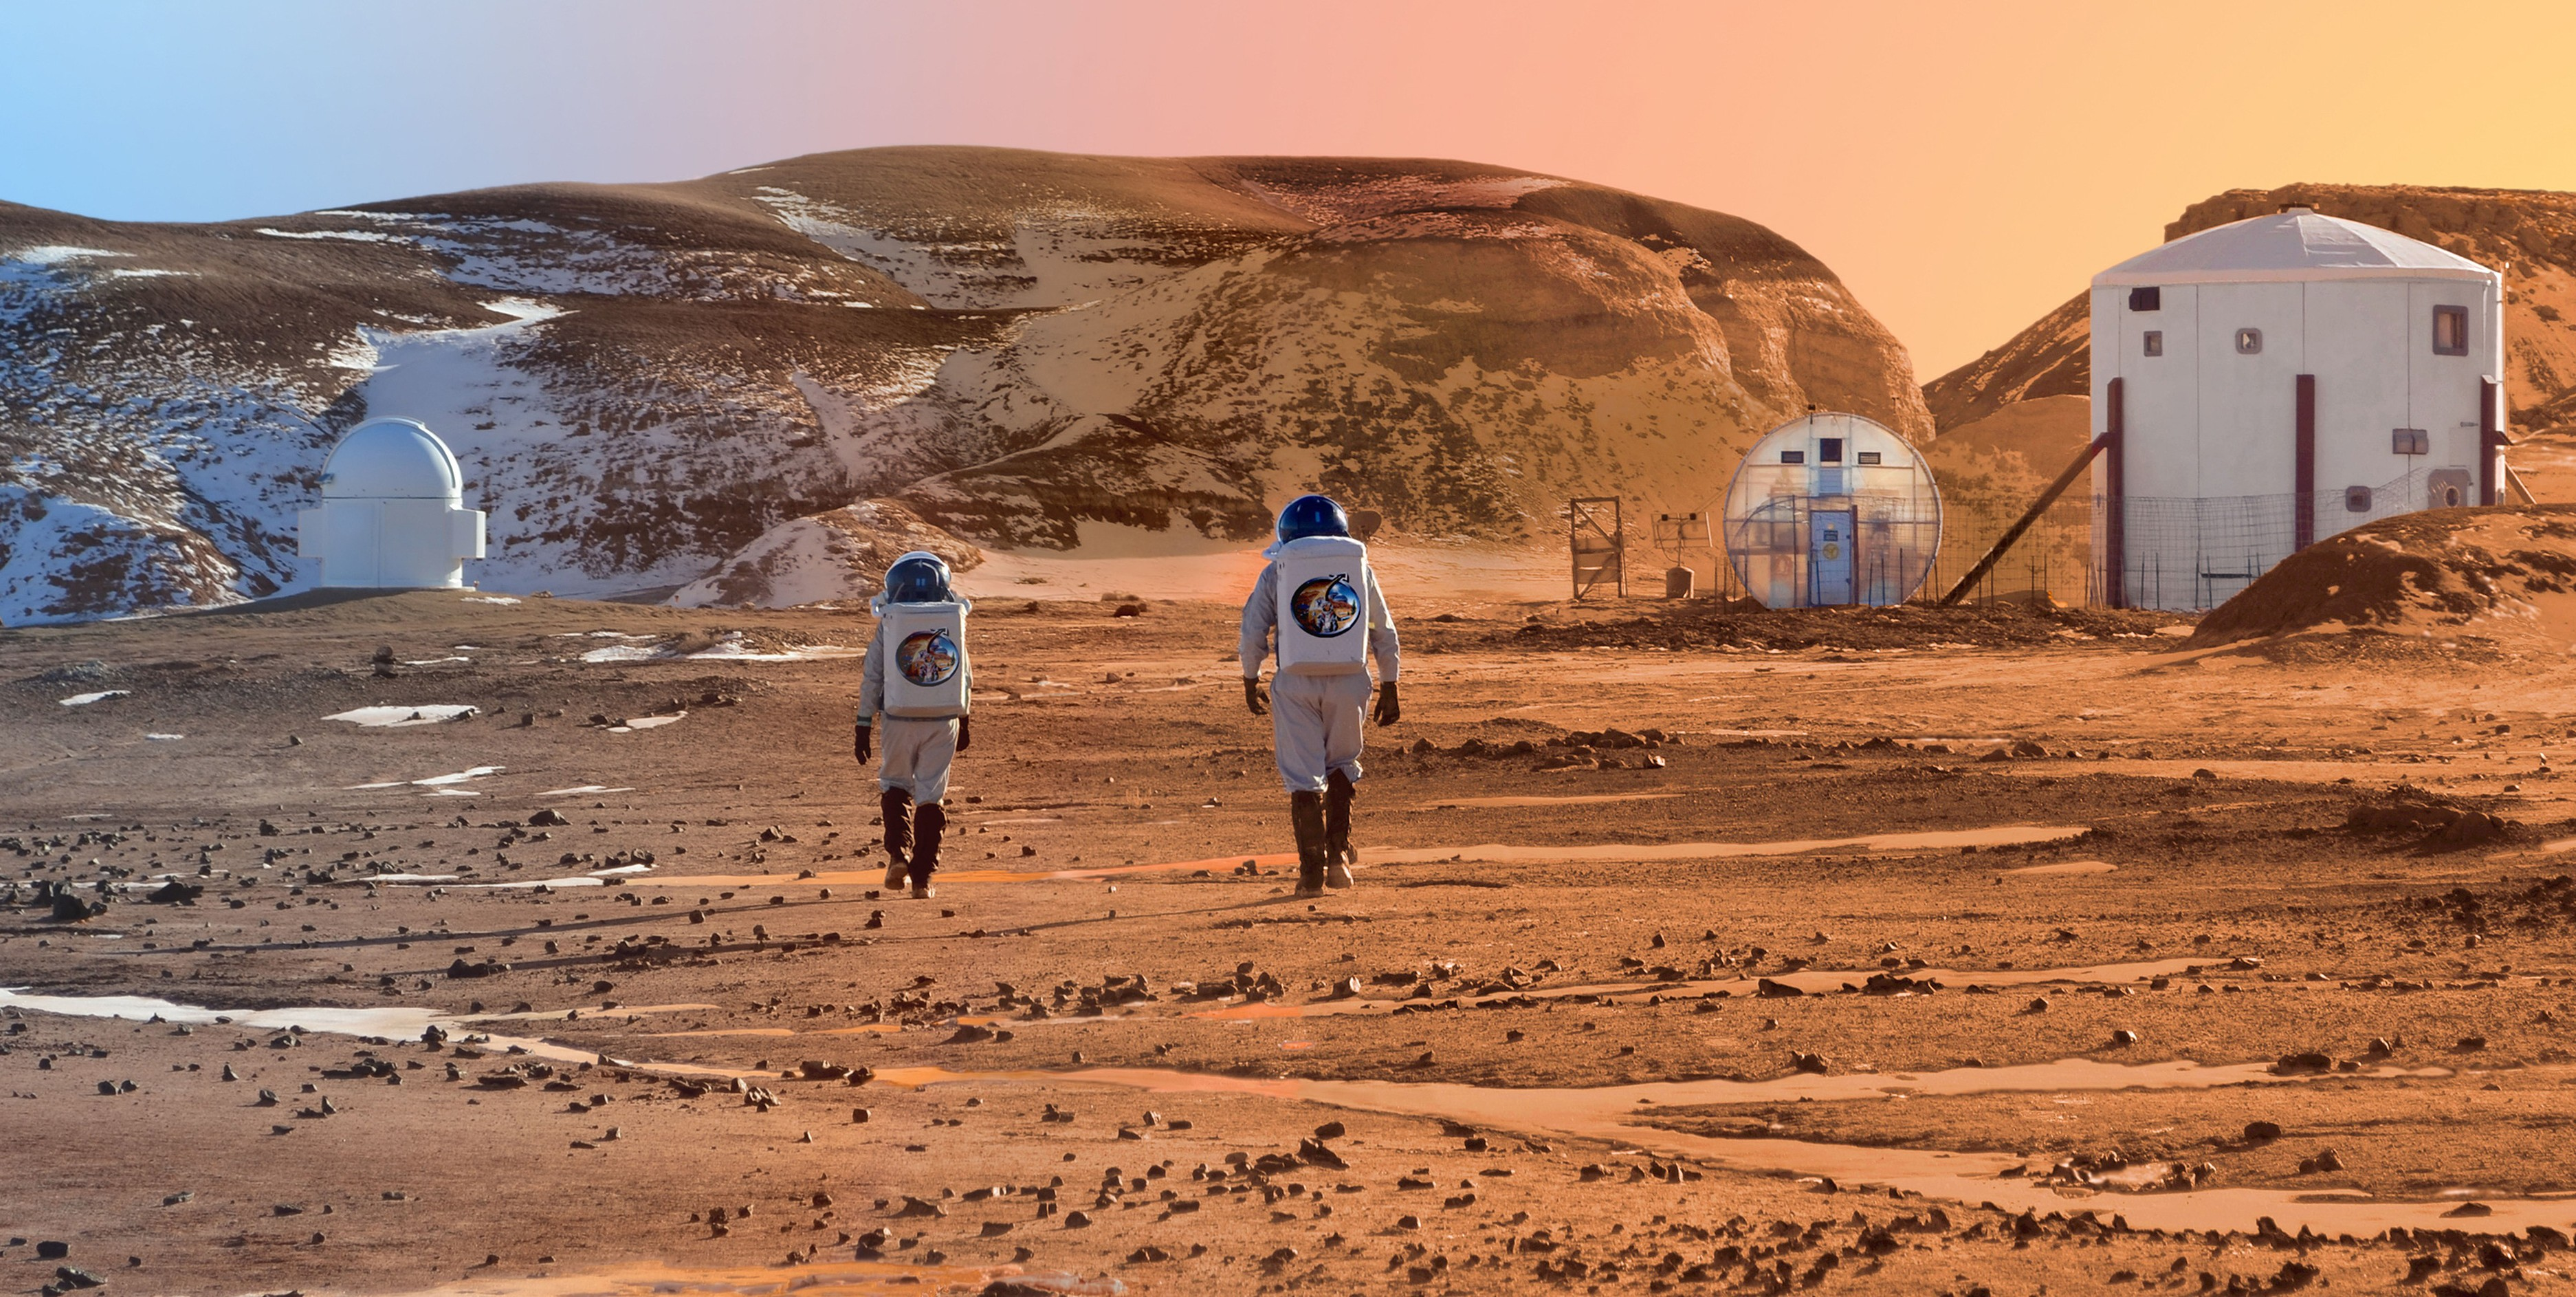 Elon Musk Mars mission will send people to die on Red Planet on hope of colonising it